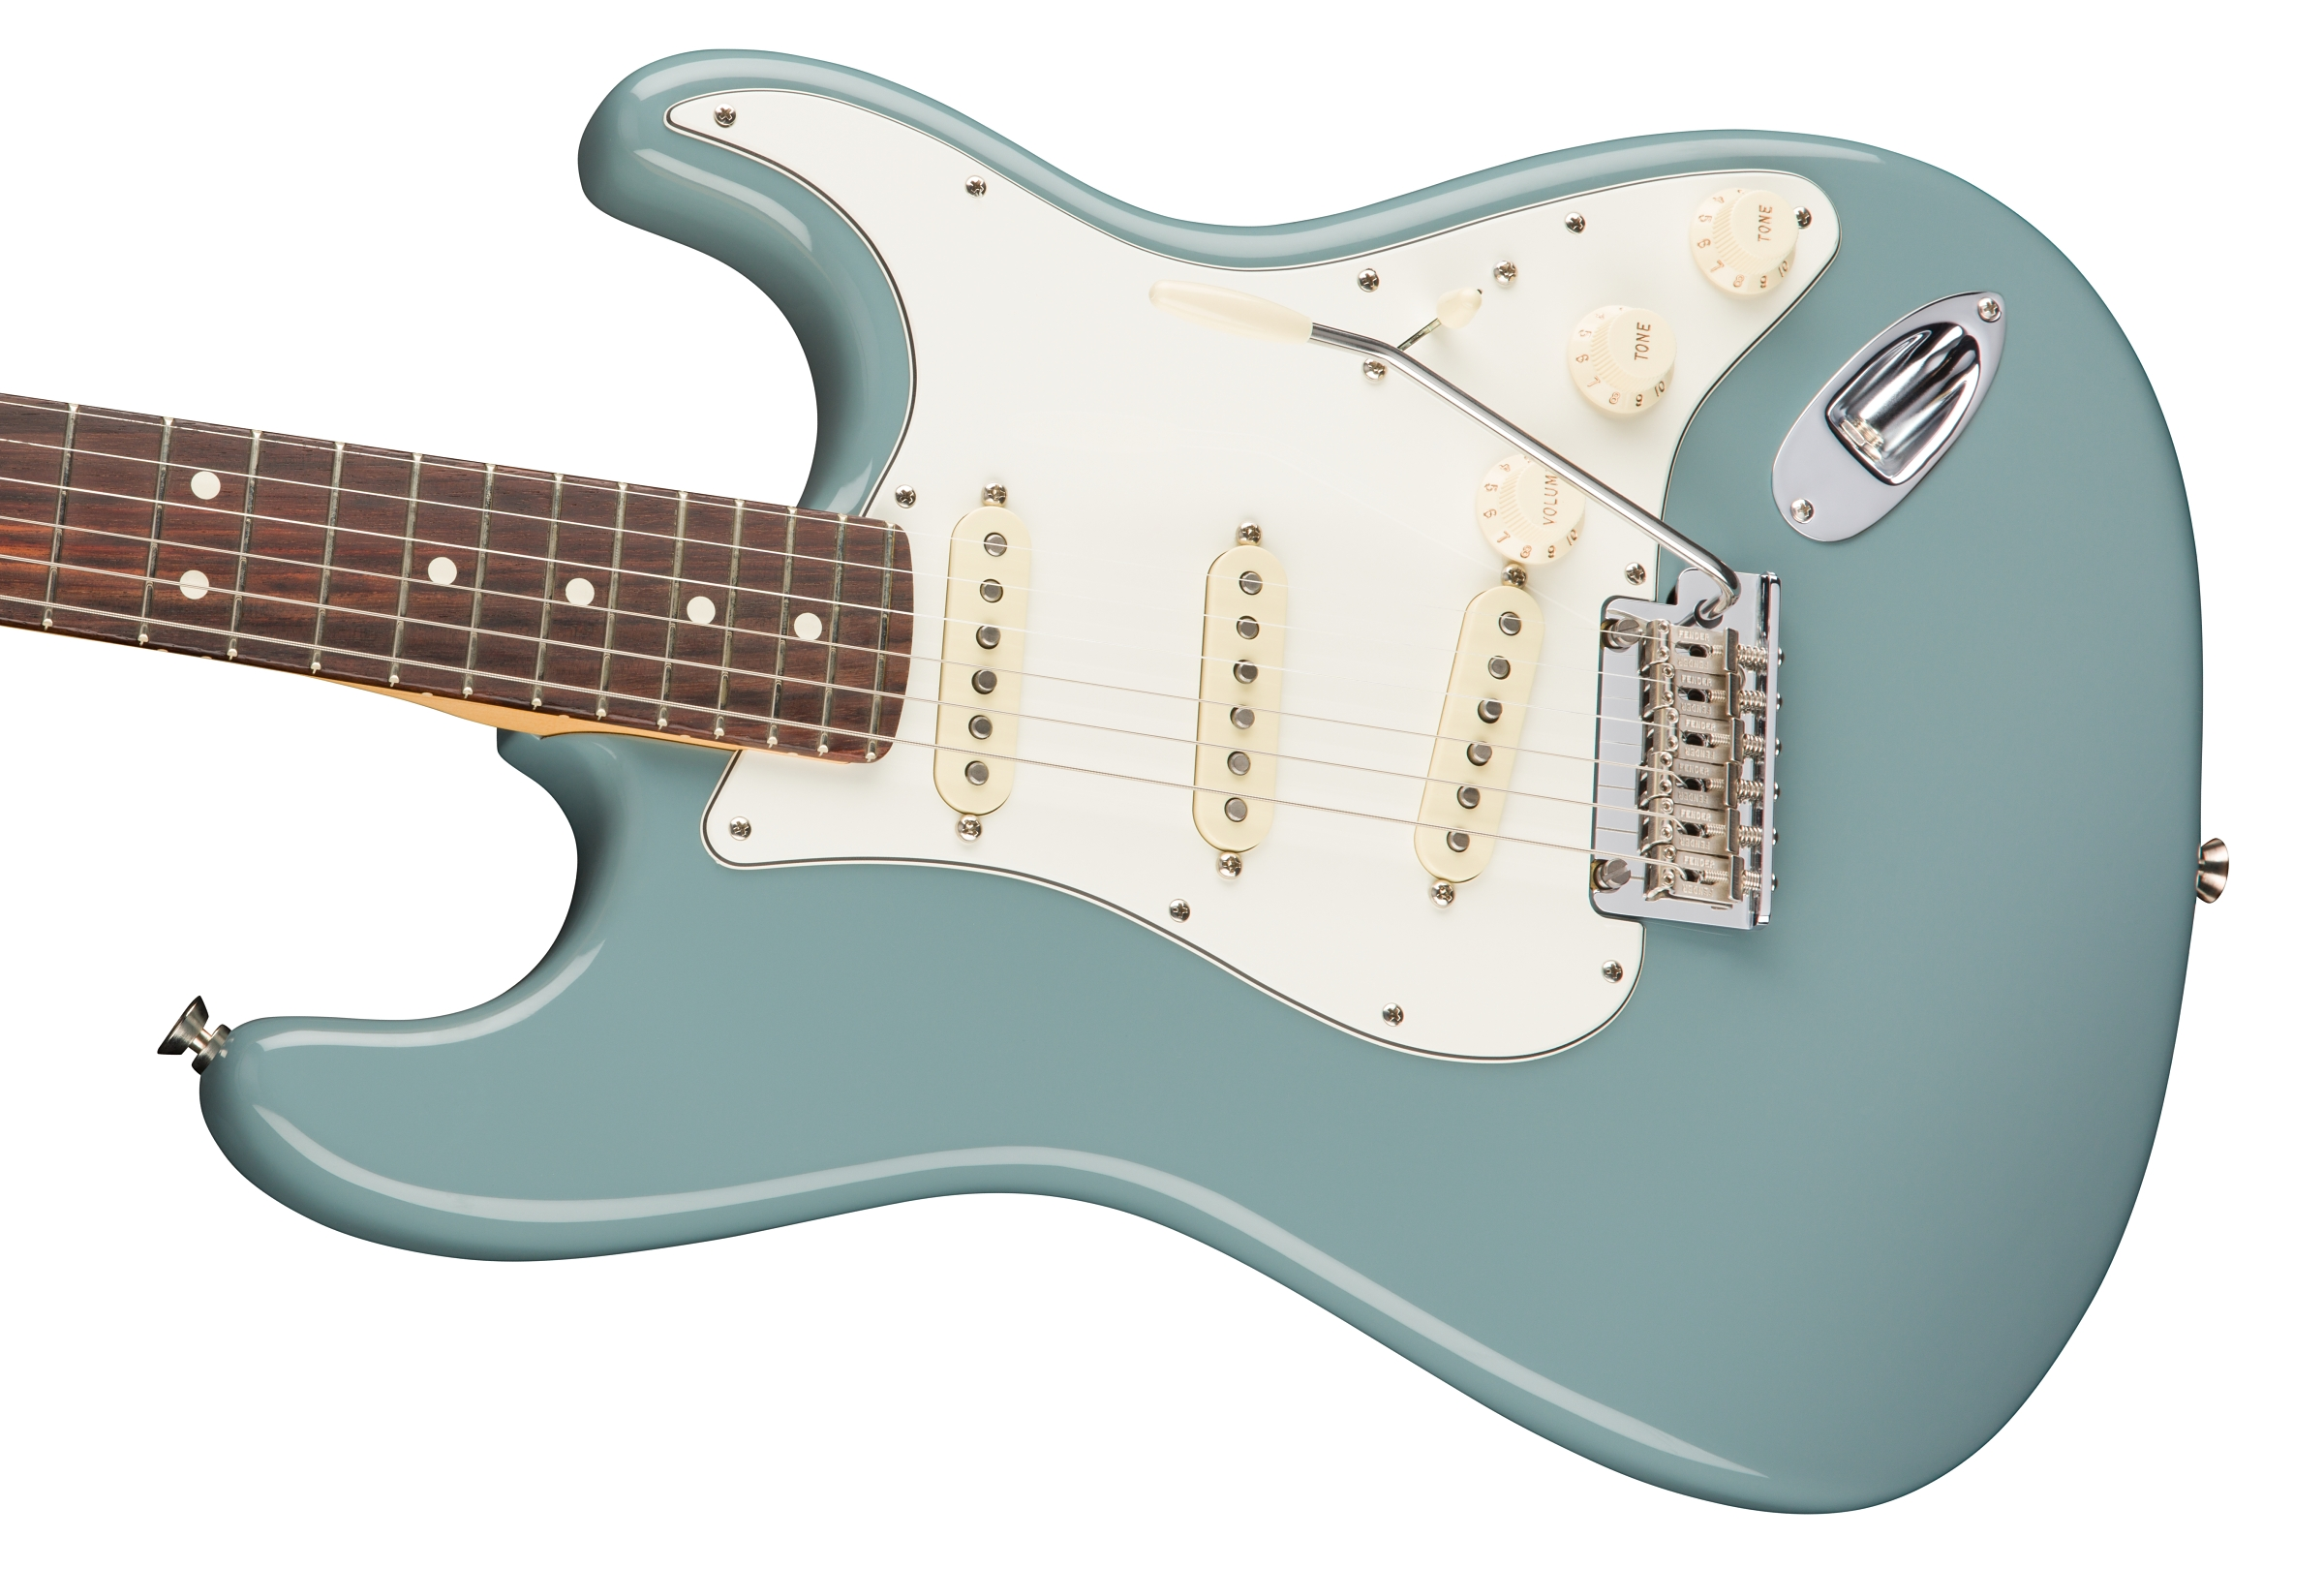 Fender Stratocaster User Manual - Enthusiast Wiring Diagrams •